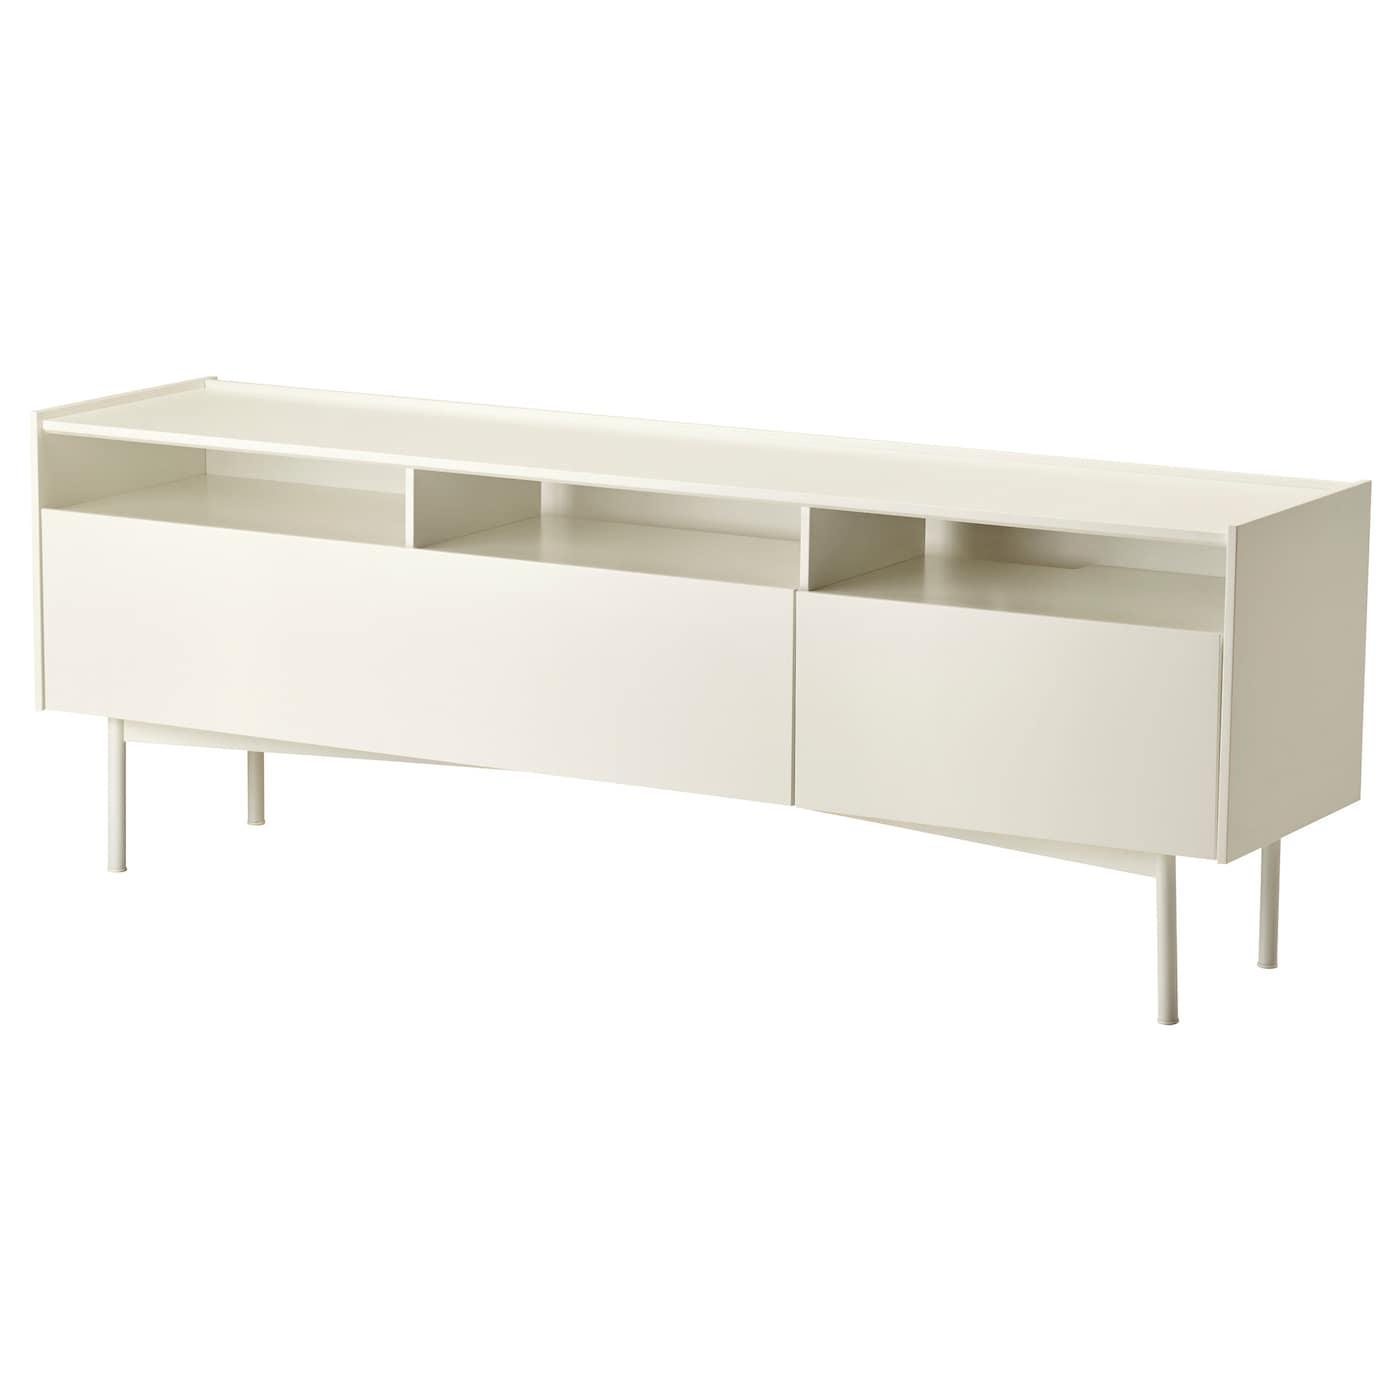 IKEA RAMSÄTRA TV bench Powder-coated fibreboard makes the surface durable and scratch resistant.